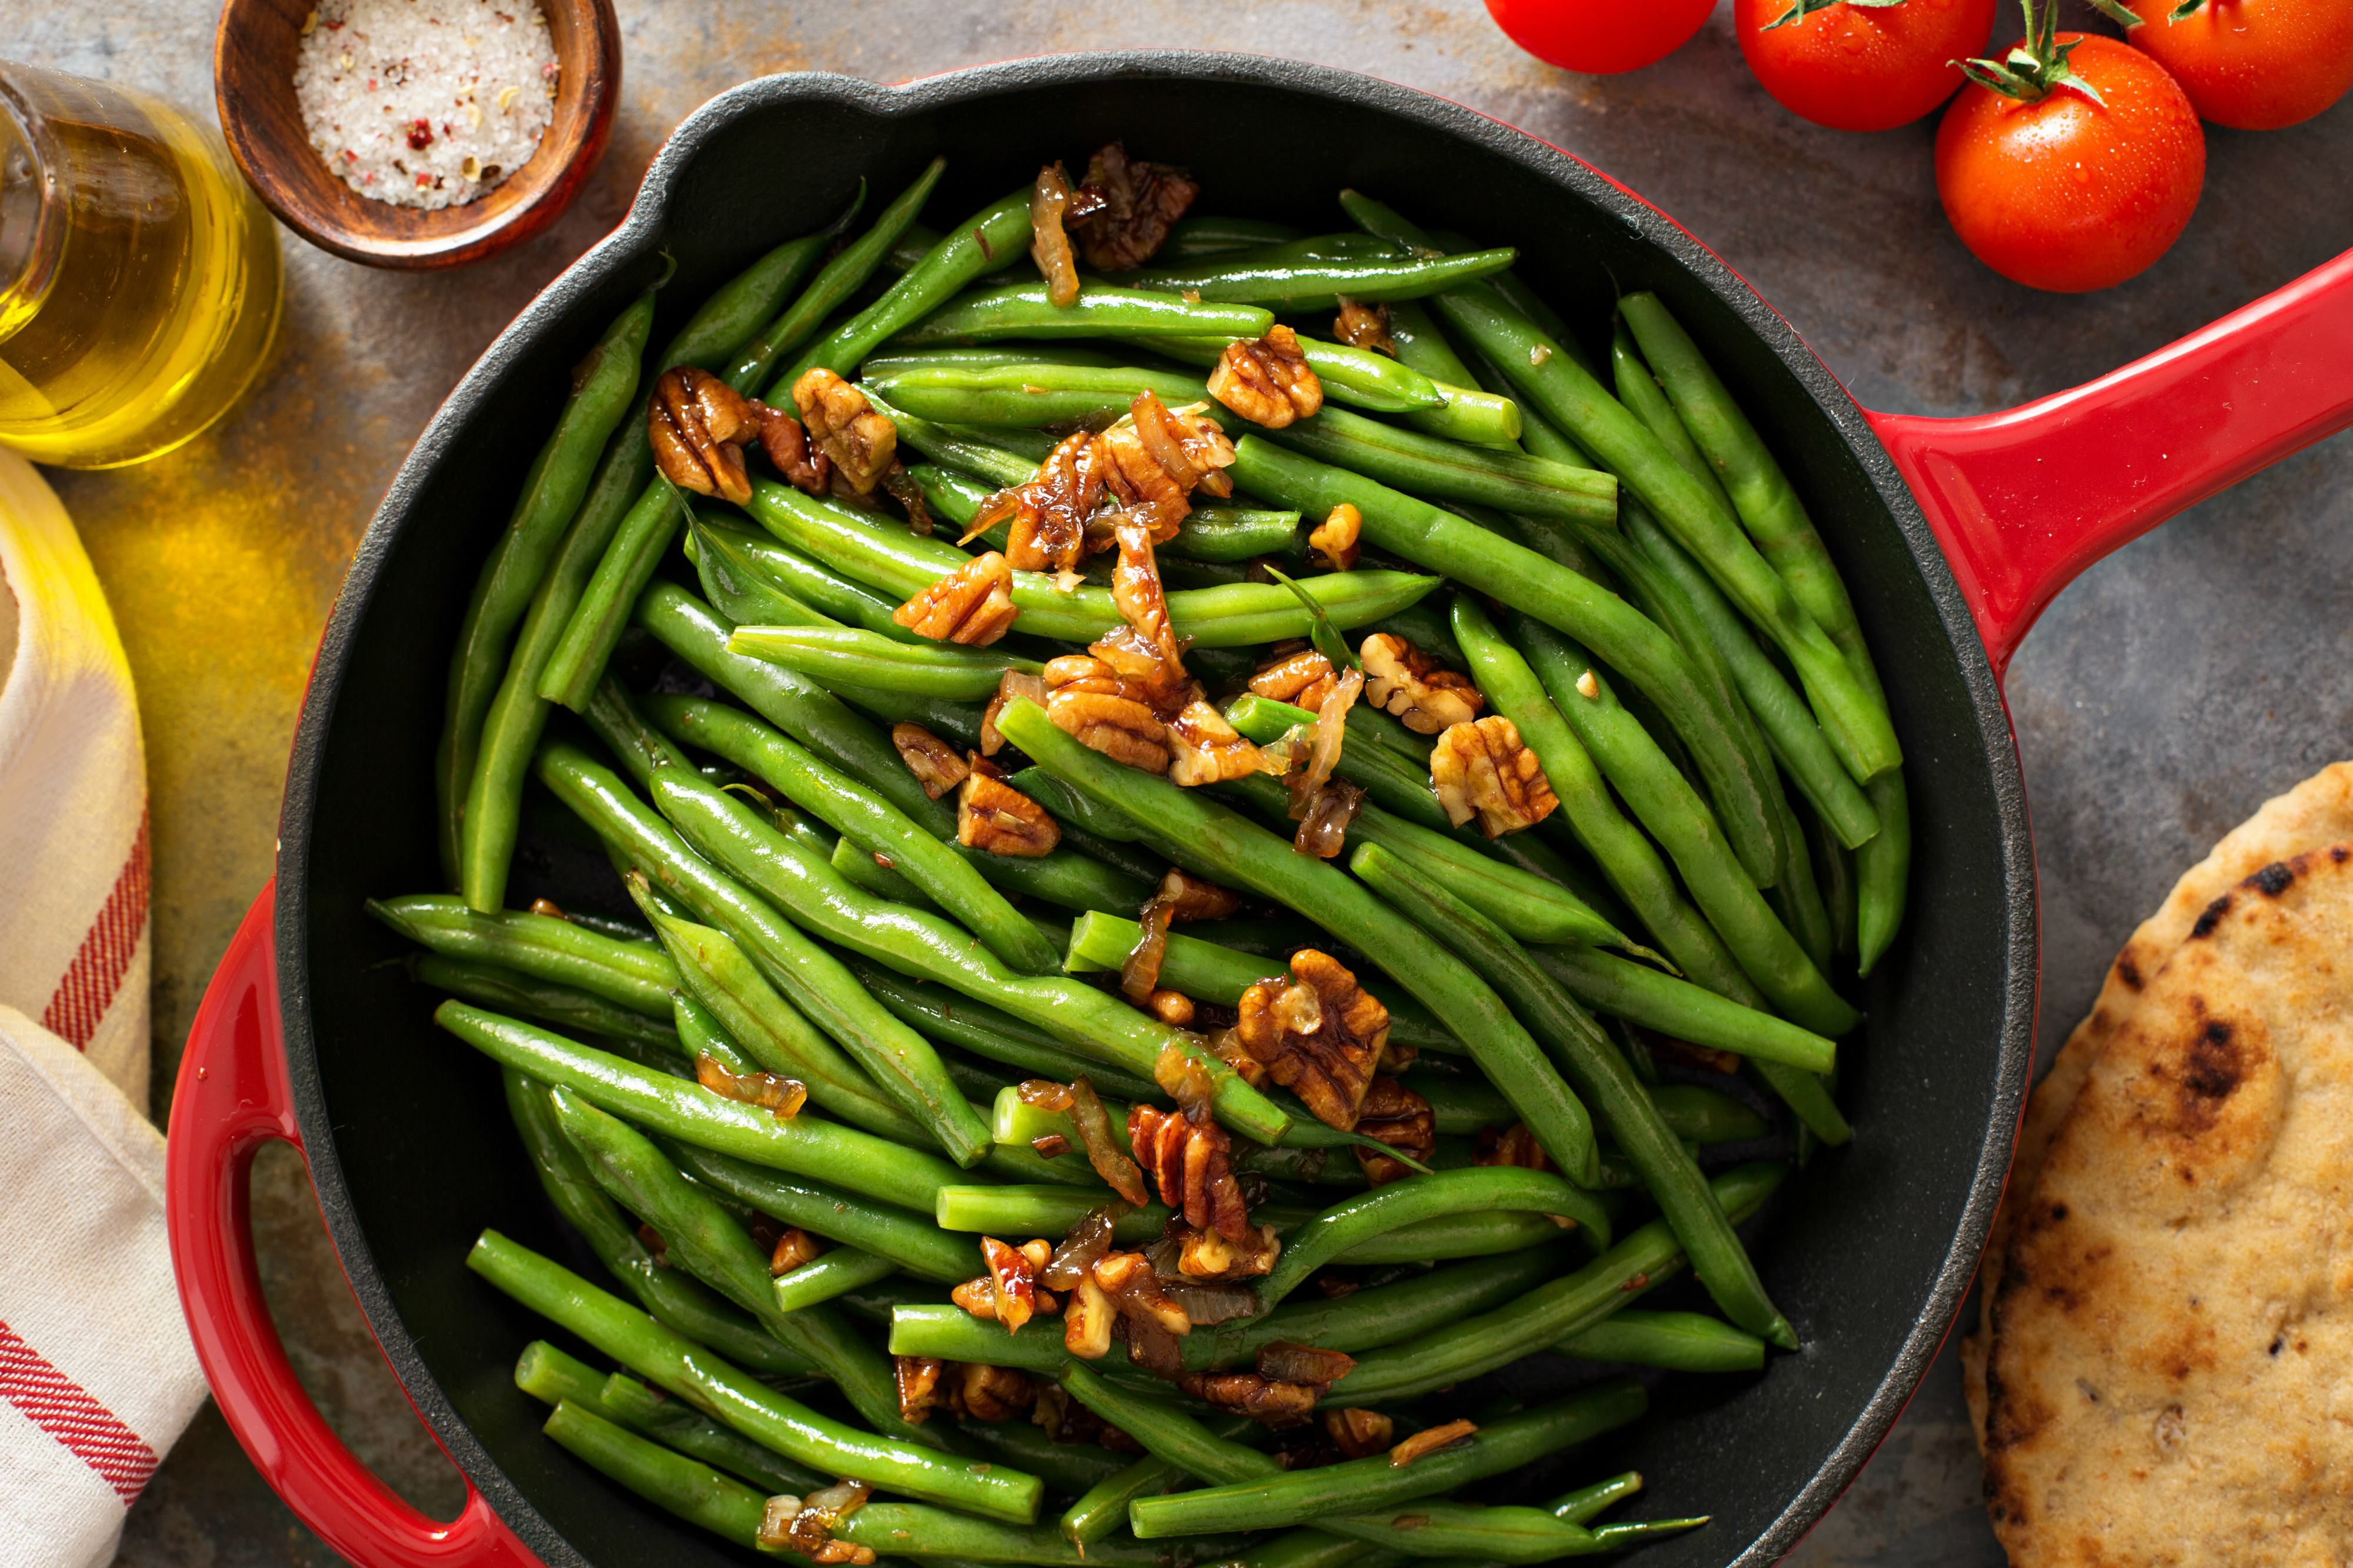 Green Beans - Lighter Holiday Menu